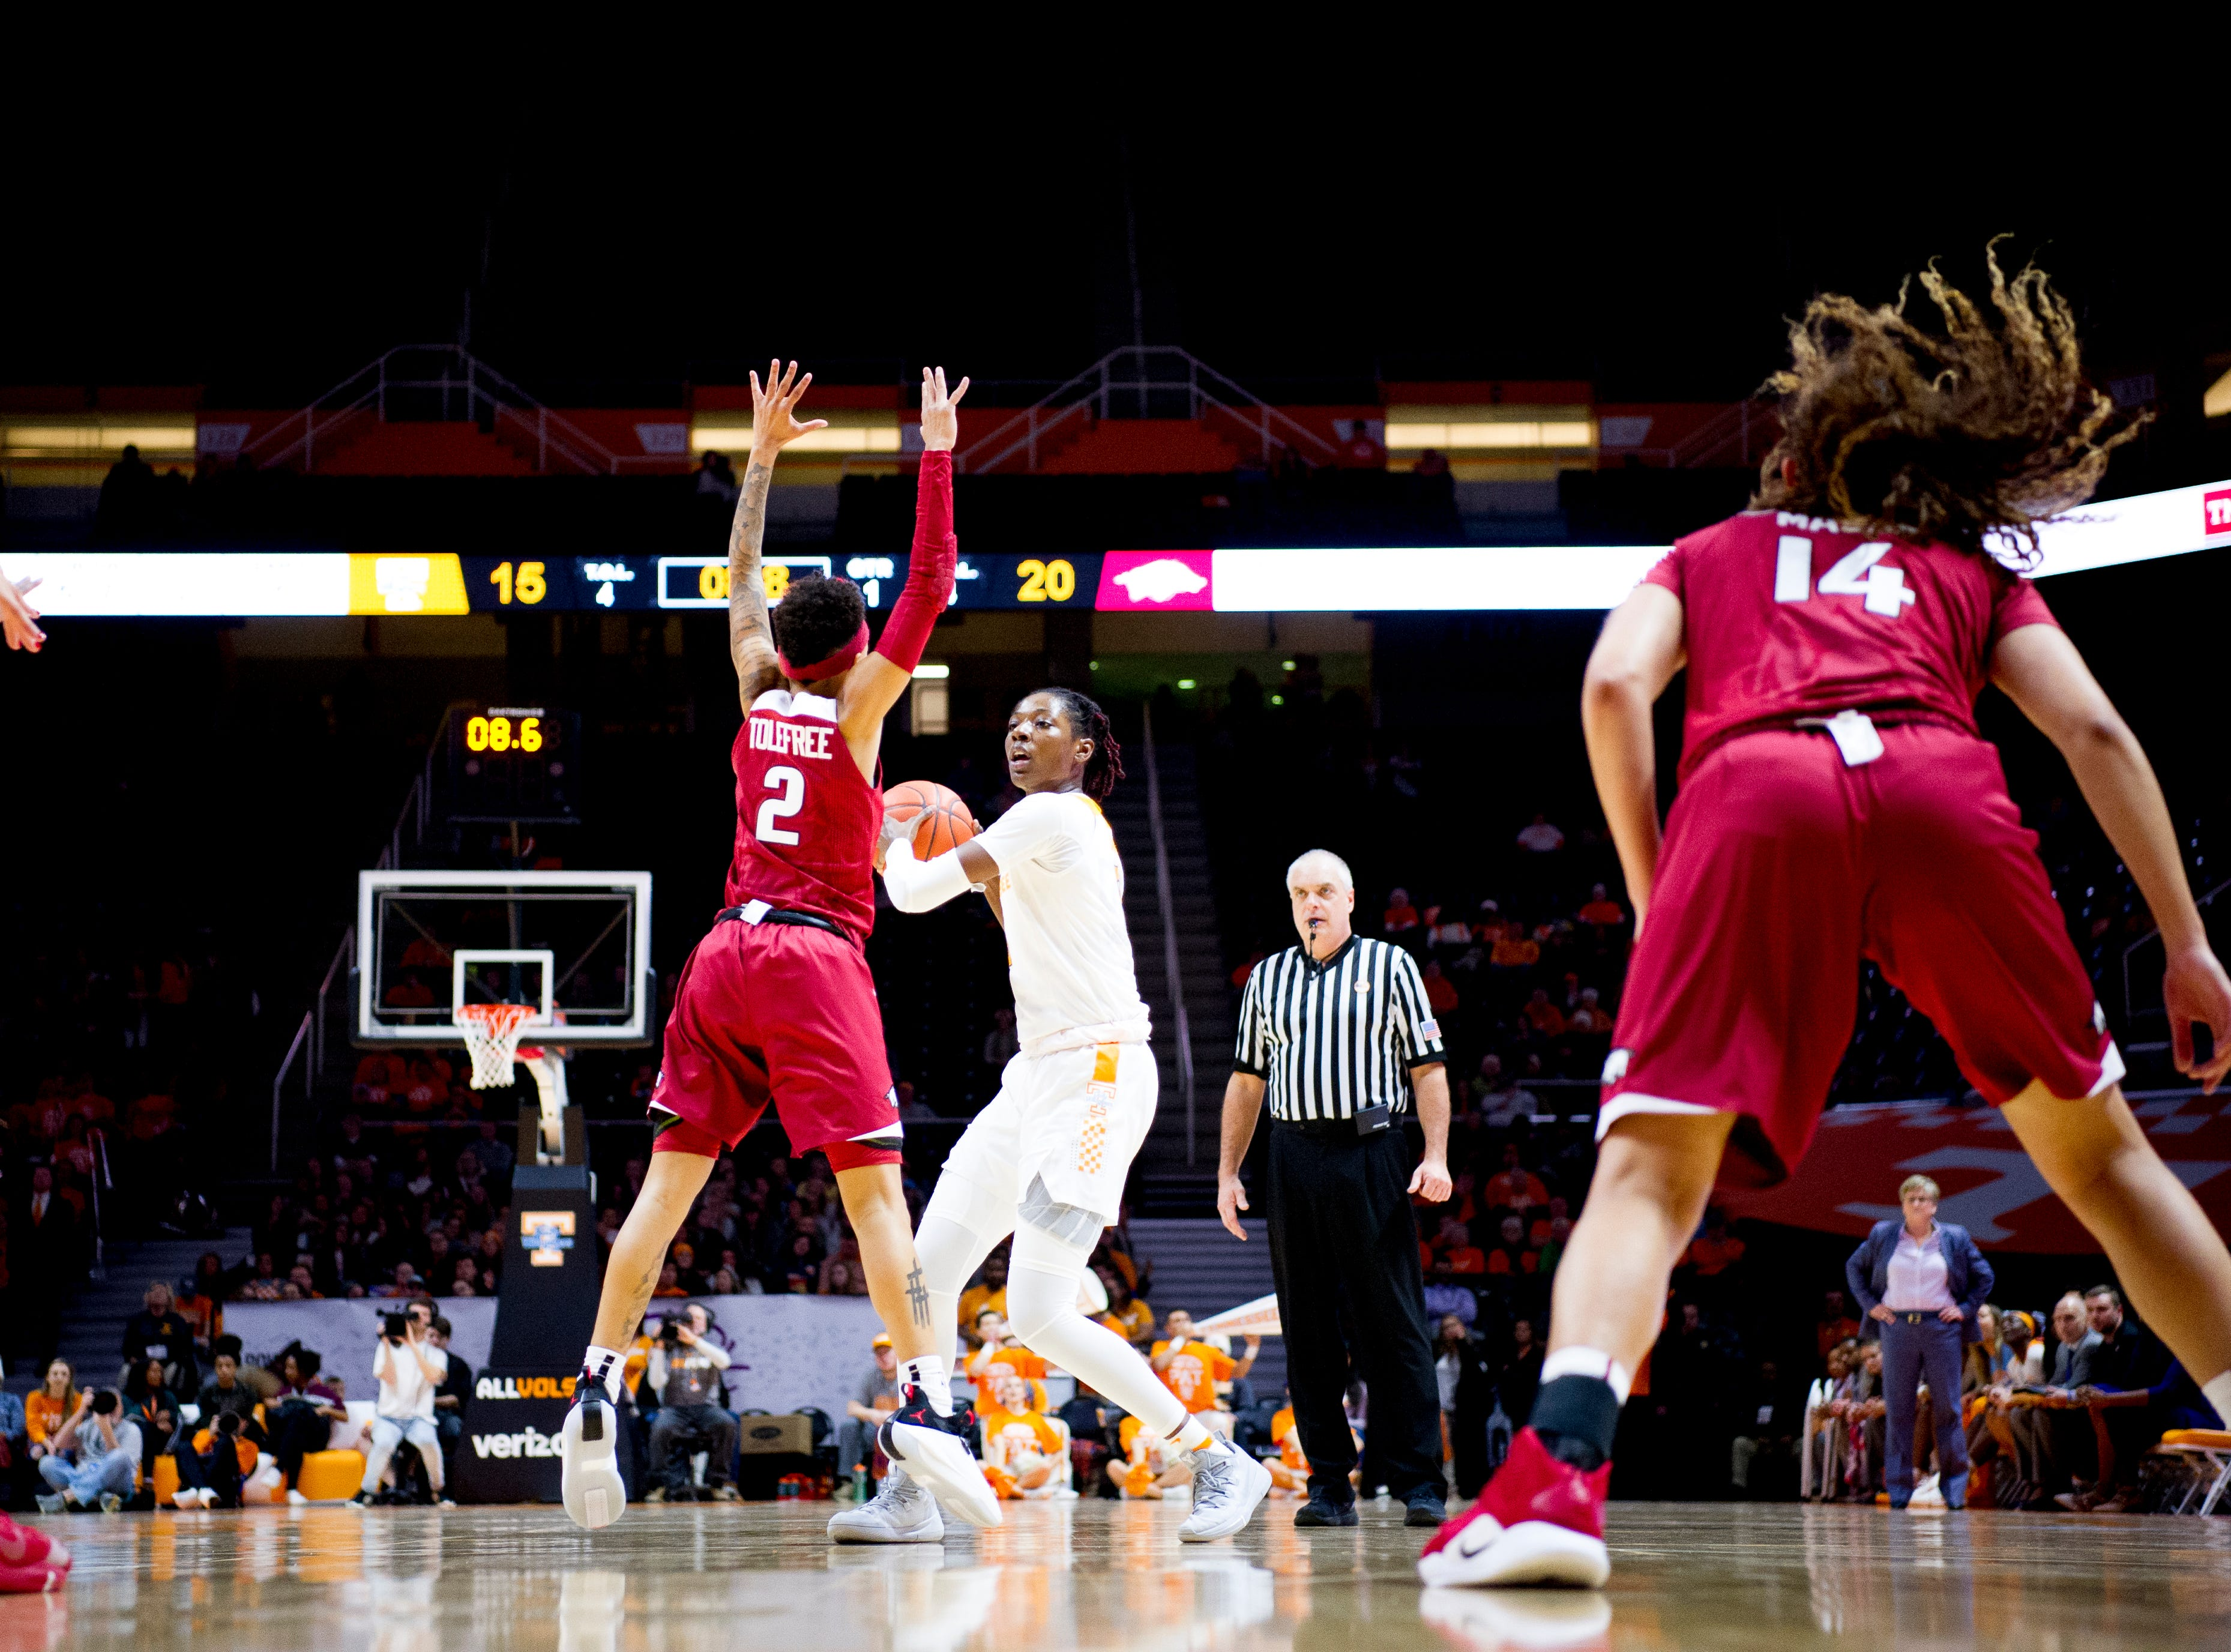 Arkansas guard A'Tyanna Gaulden (0) looks to pass during a game between Tennessee and Arkansas at Thompson-Boling Arena in , Tennessee on Monday, January 21, 2019.